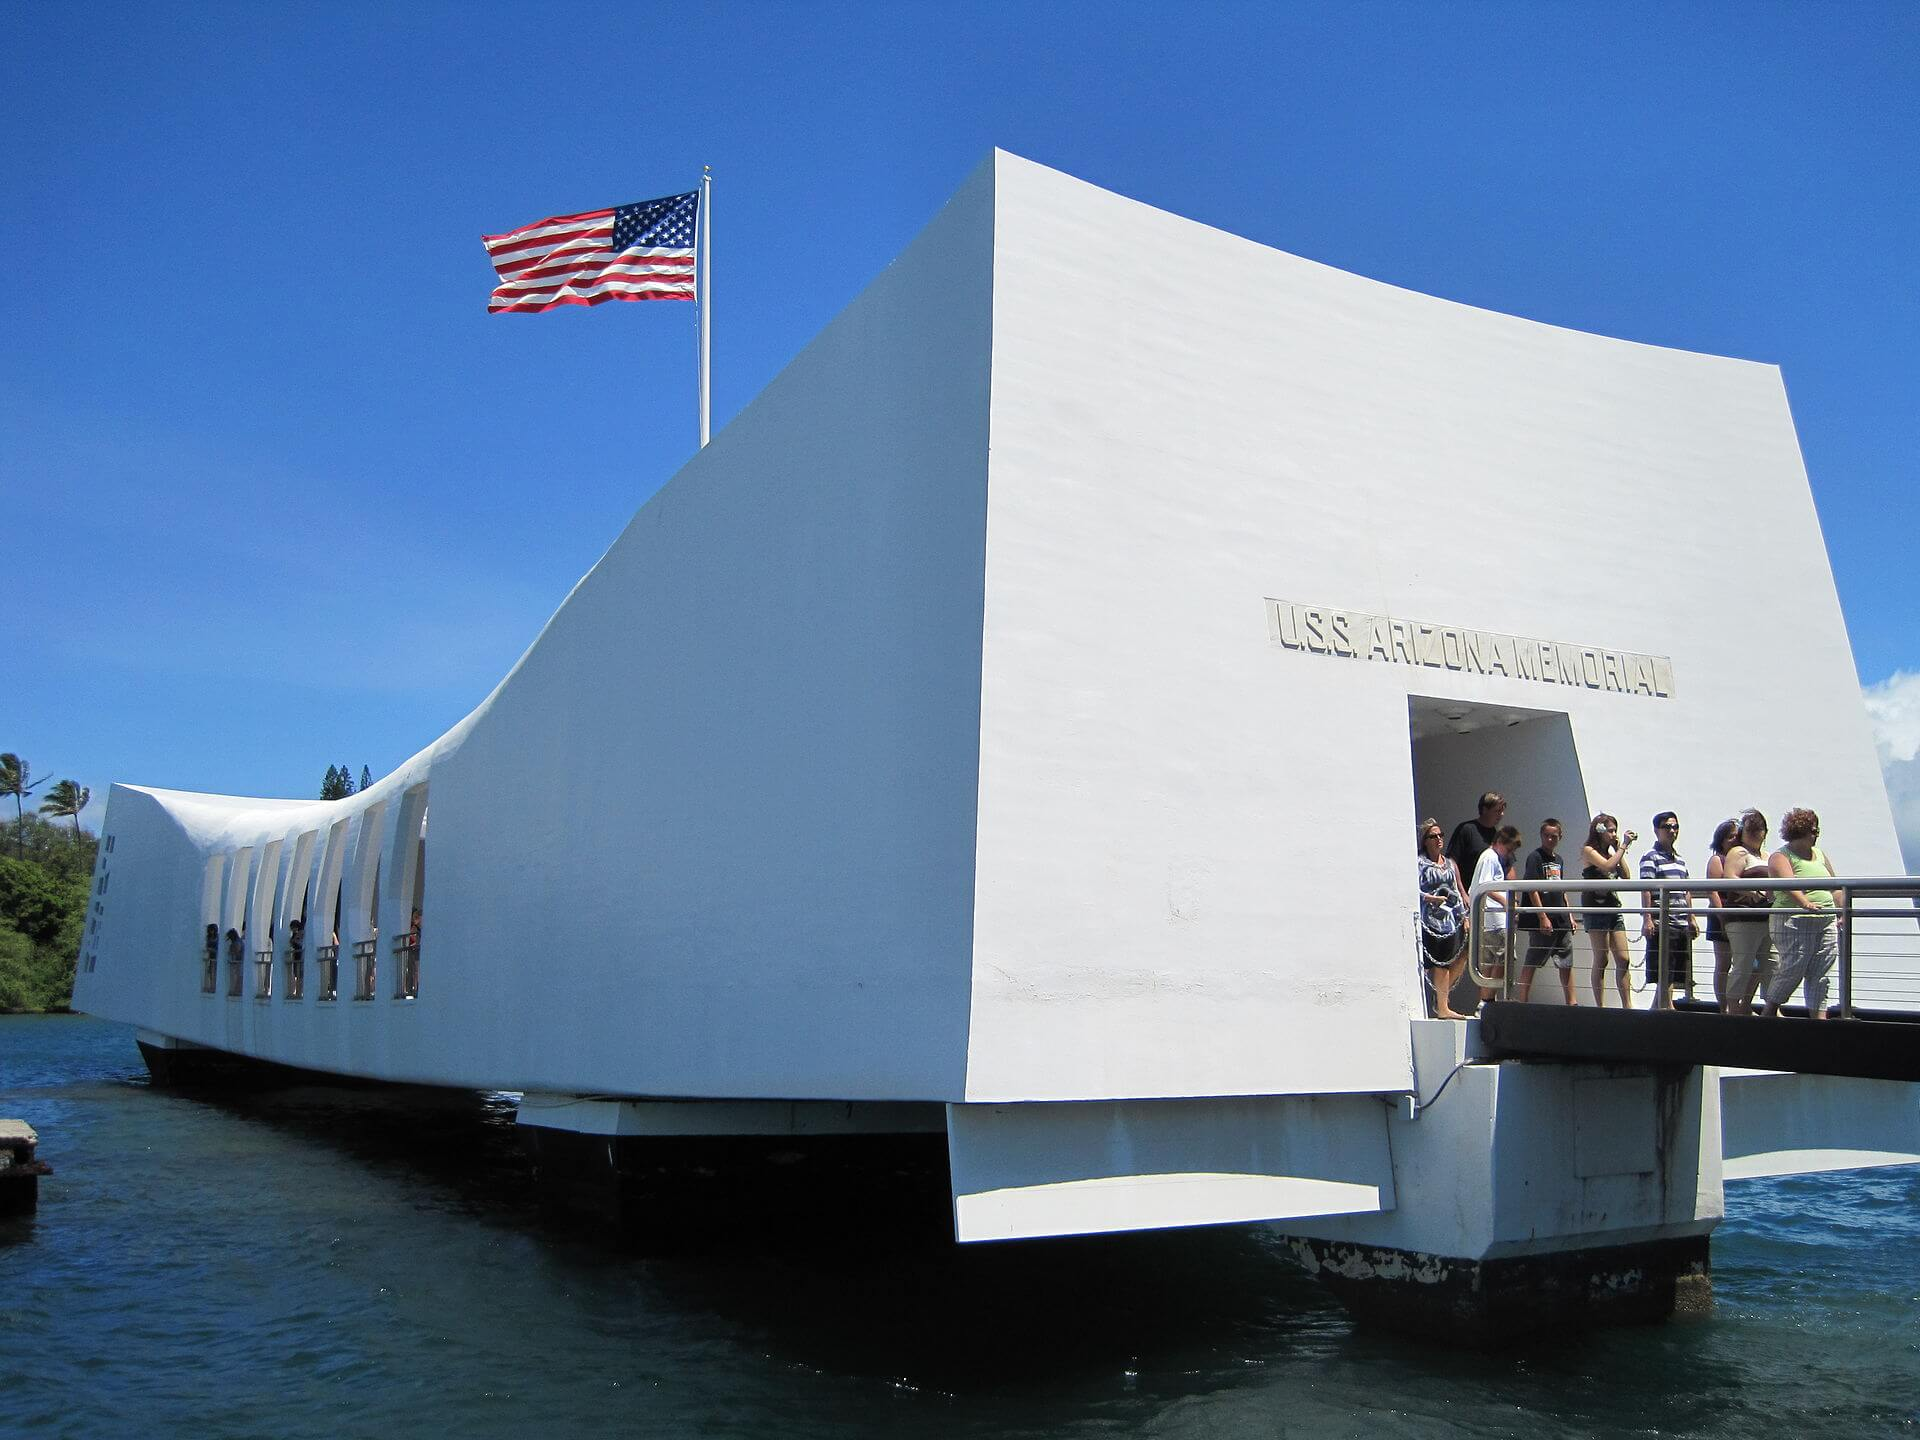 USS Arizona Memorial Oahu